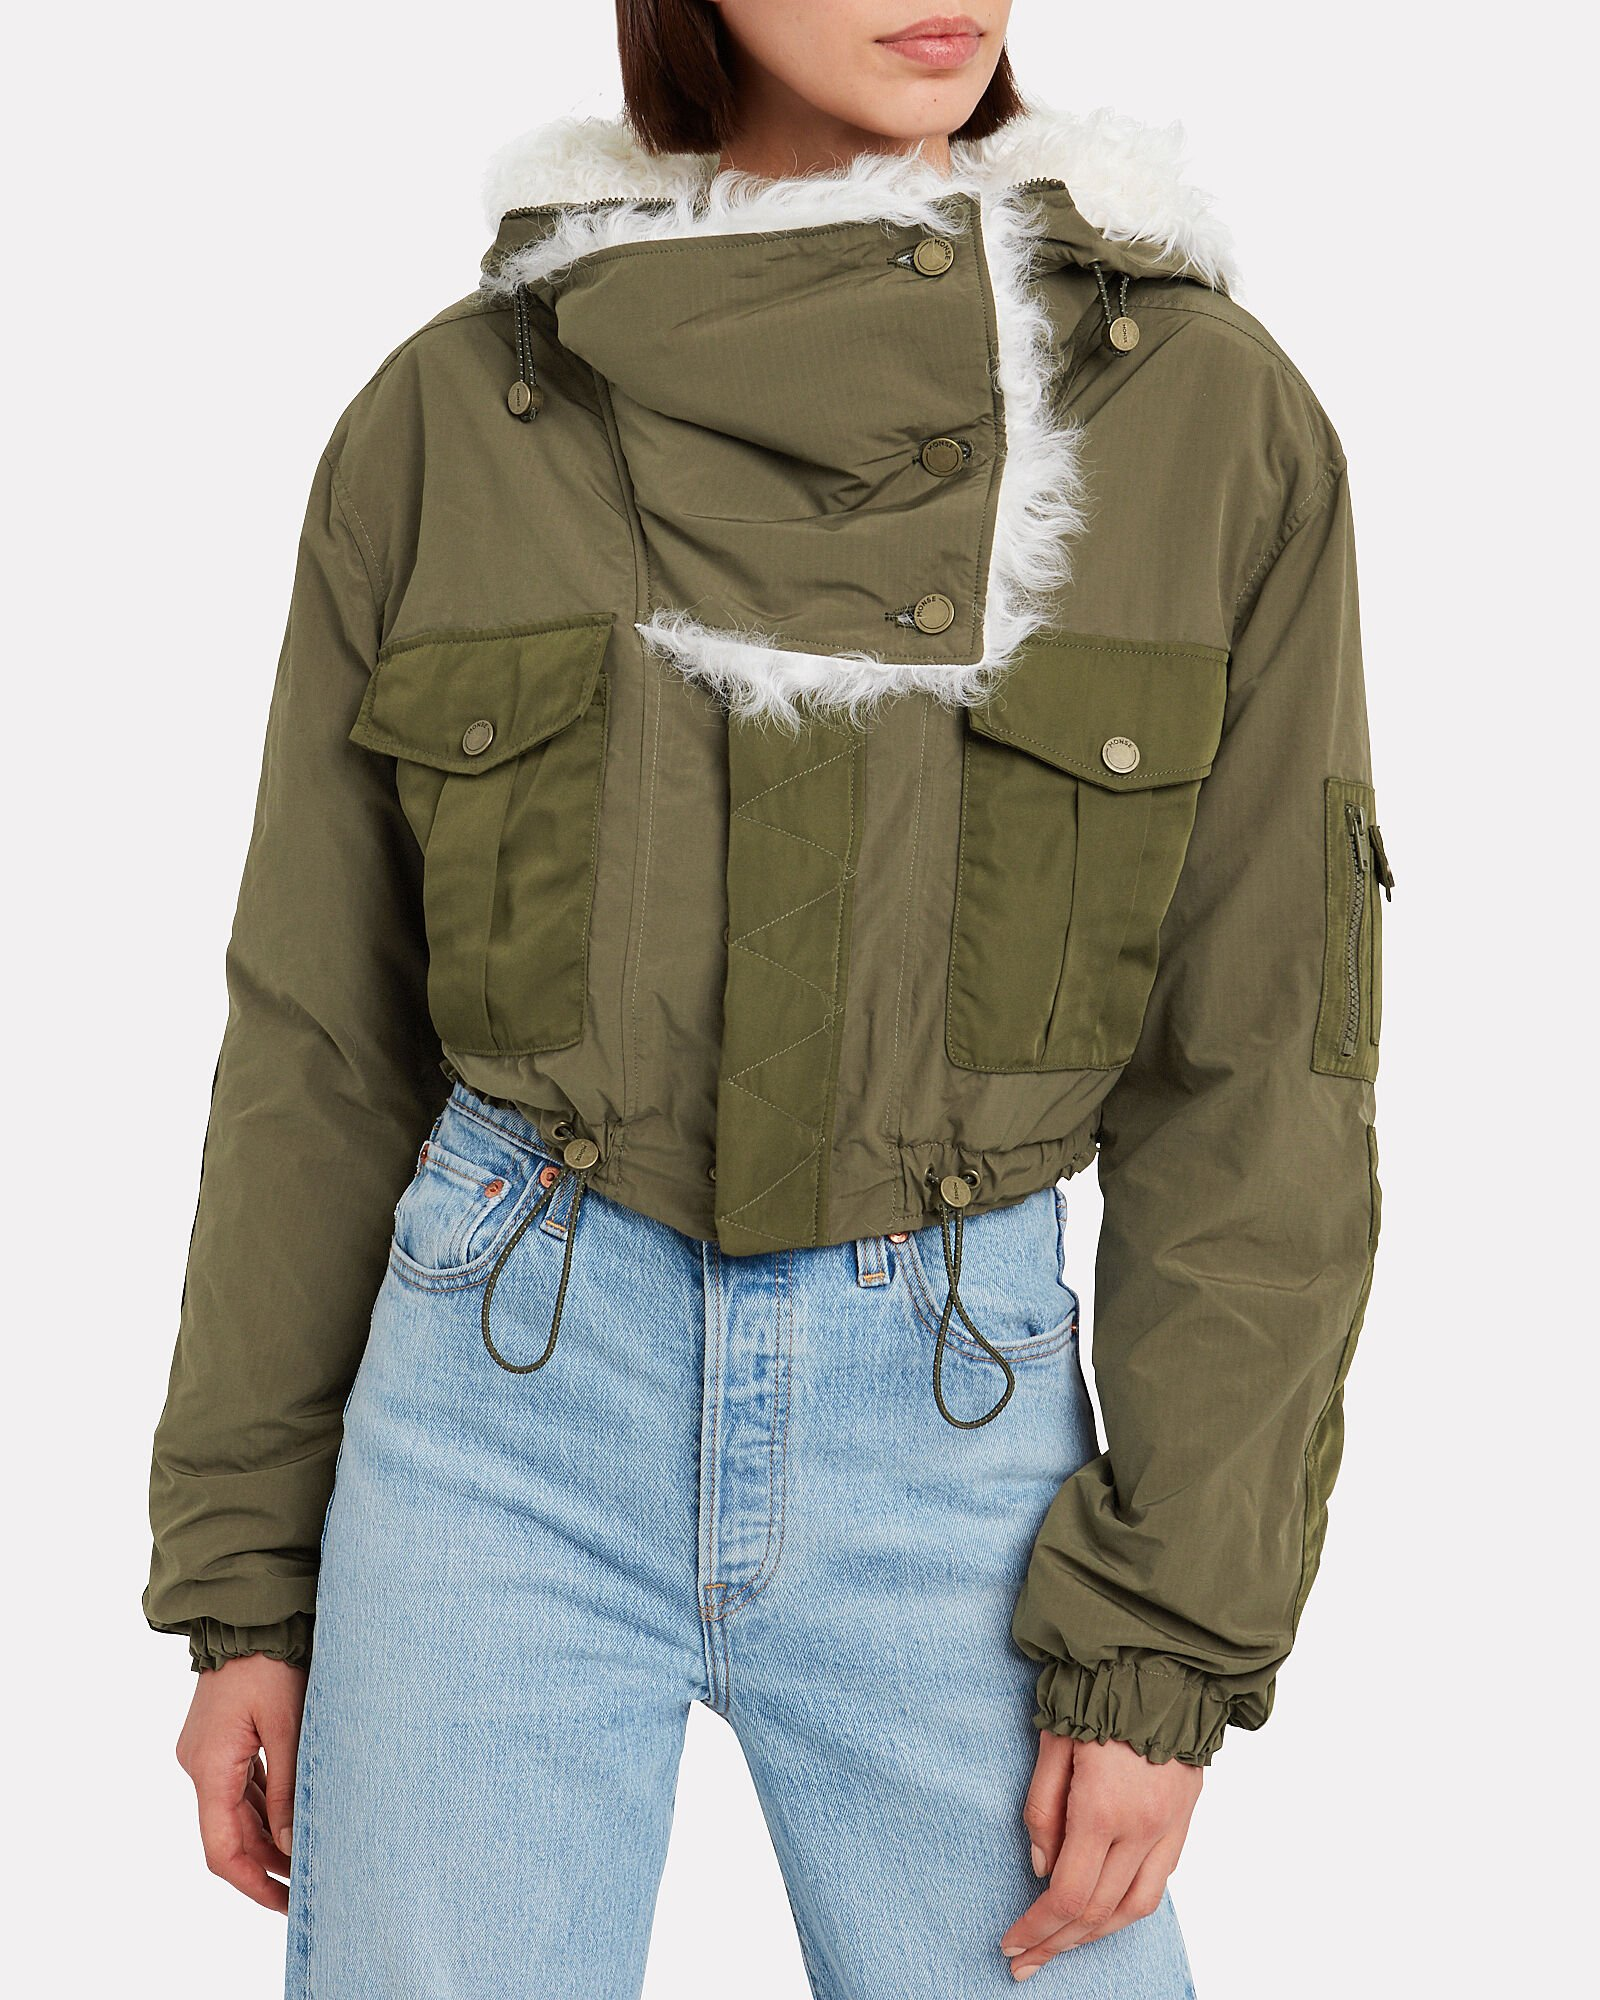 Shearling-Trimmed Bomber Jacket, ARMY GREEN/IVORY, hi-res